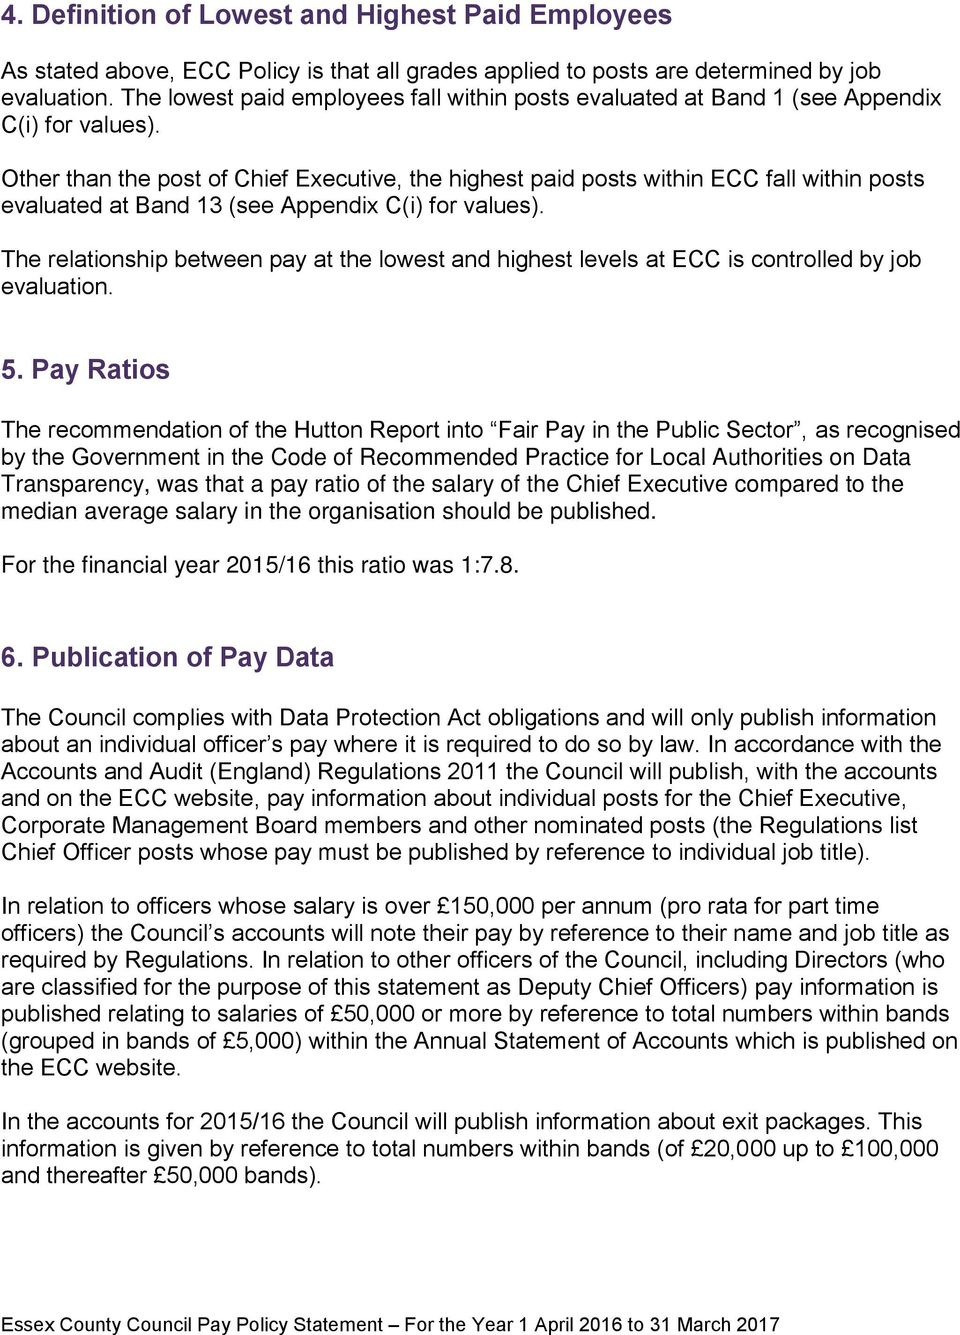 Other than the post of Chief Executive, the highest paid posts within ECC fall within posts evaluated at Band 13 (see Appendix C(i) for values).